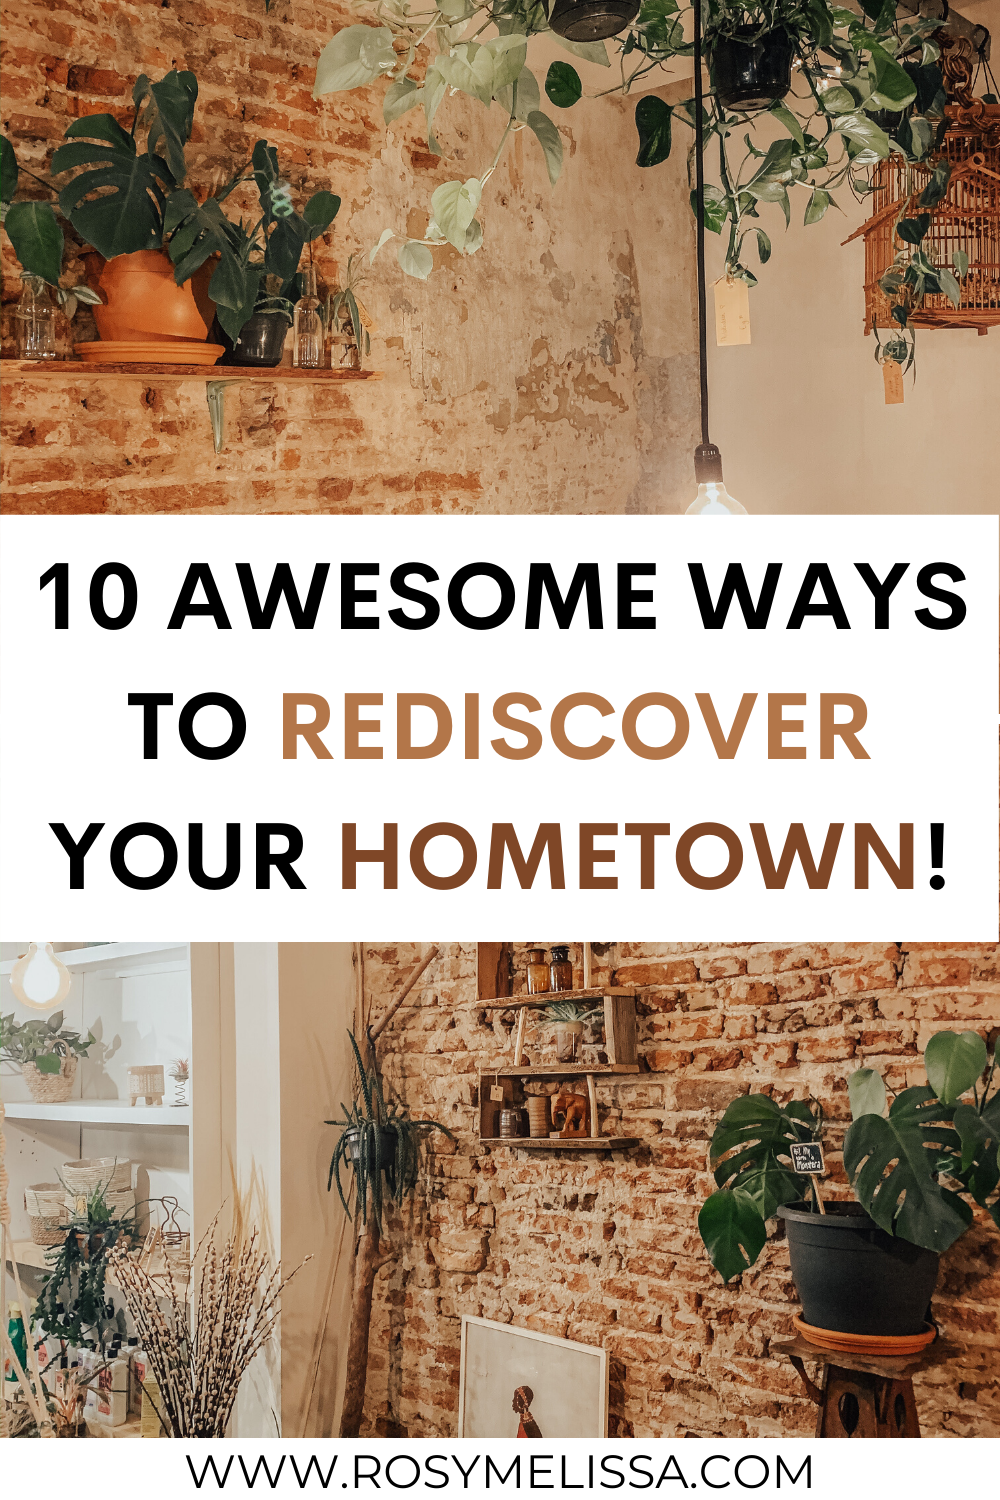 how to rediscover your hometown, 10 ways to rediscover your hometown, travel in your own country